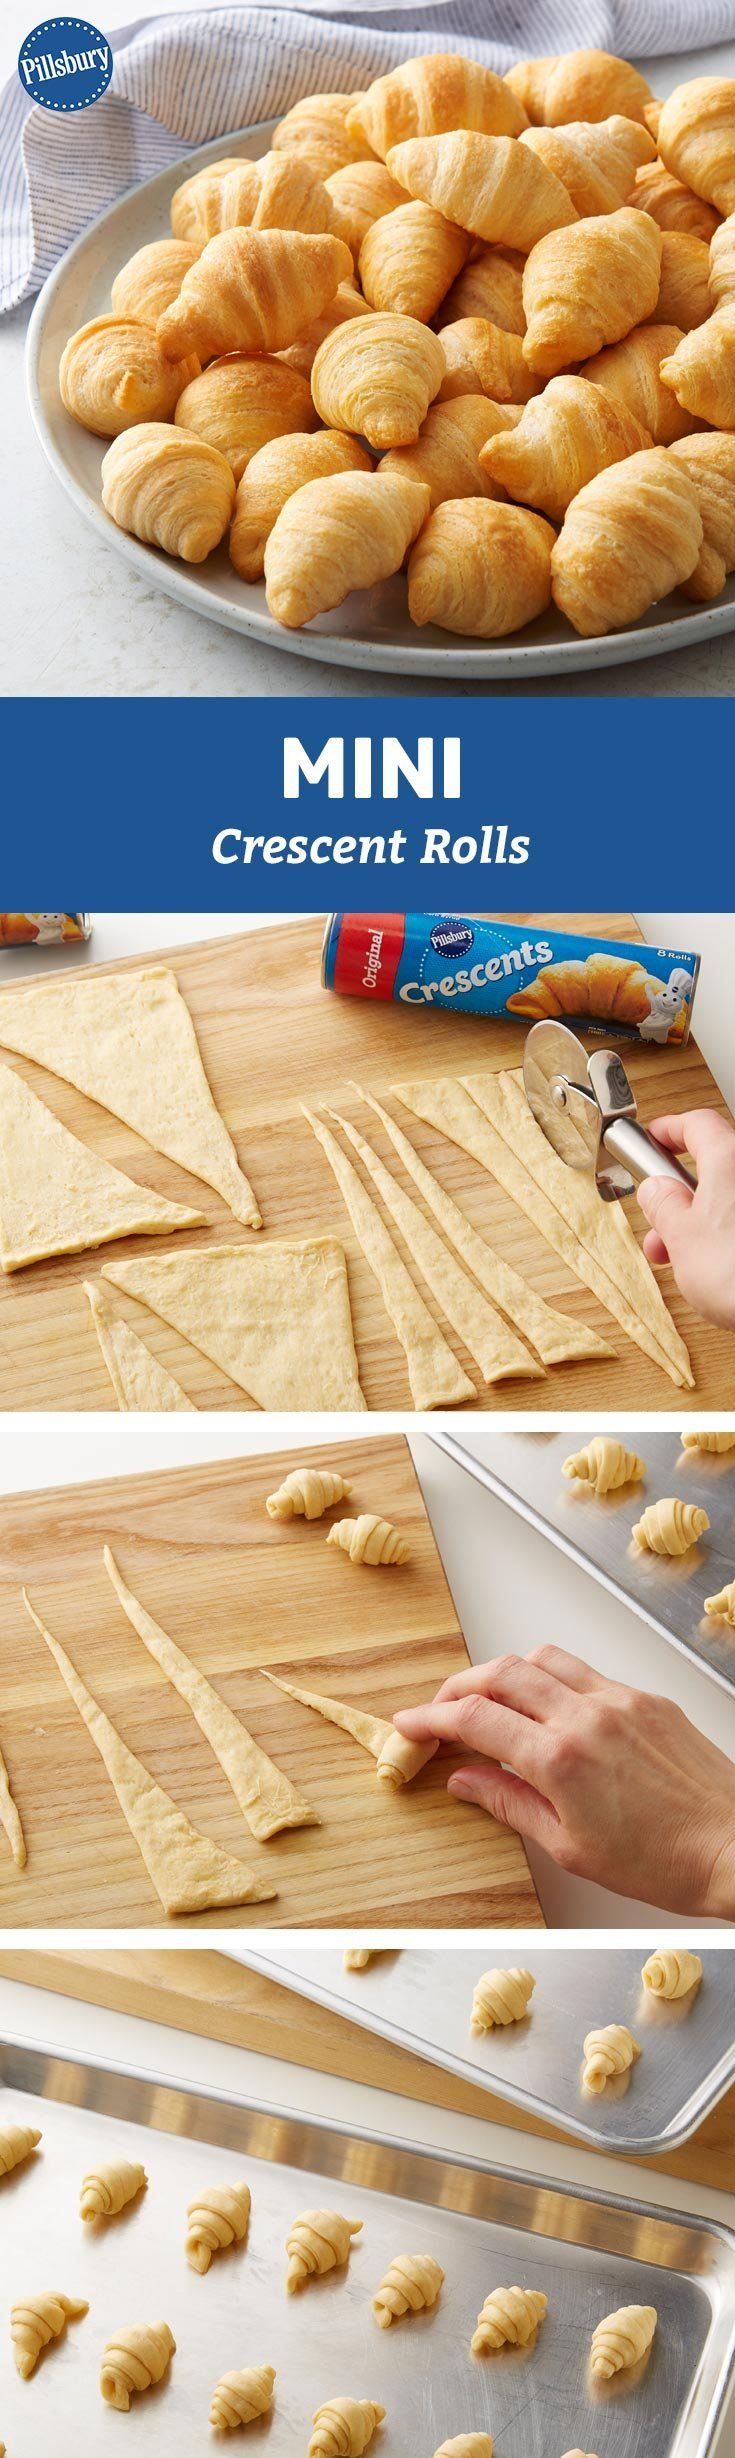 A can of crescents make 8, but when you go mini they make 24. That's winning math when you've got a crowd over to watch the big game. Snack on!